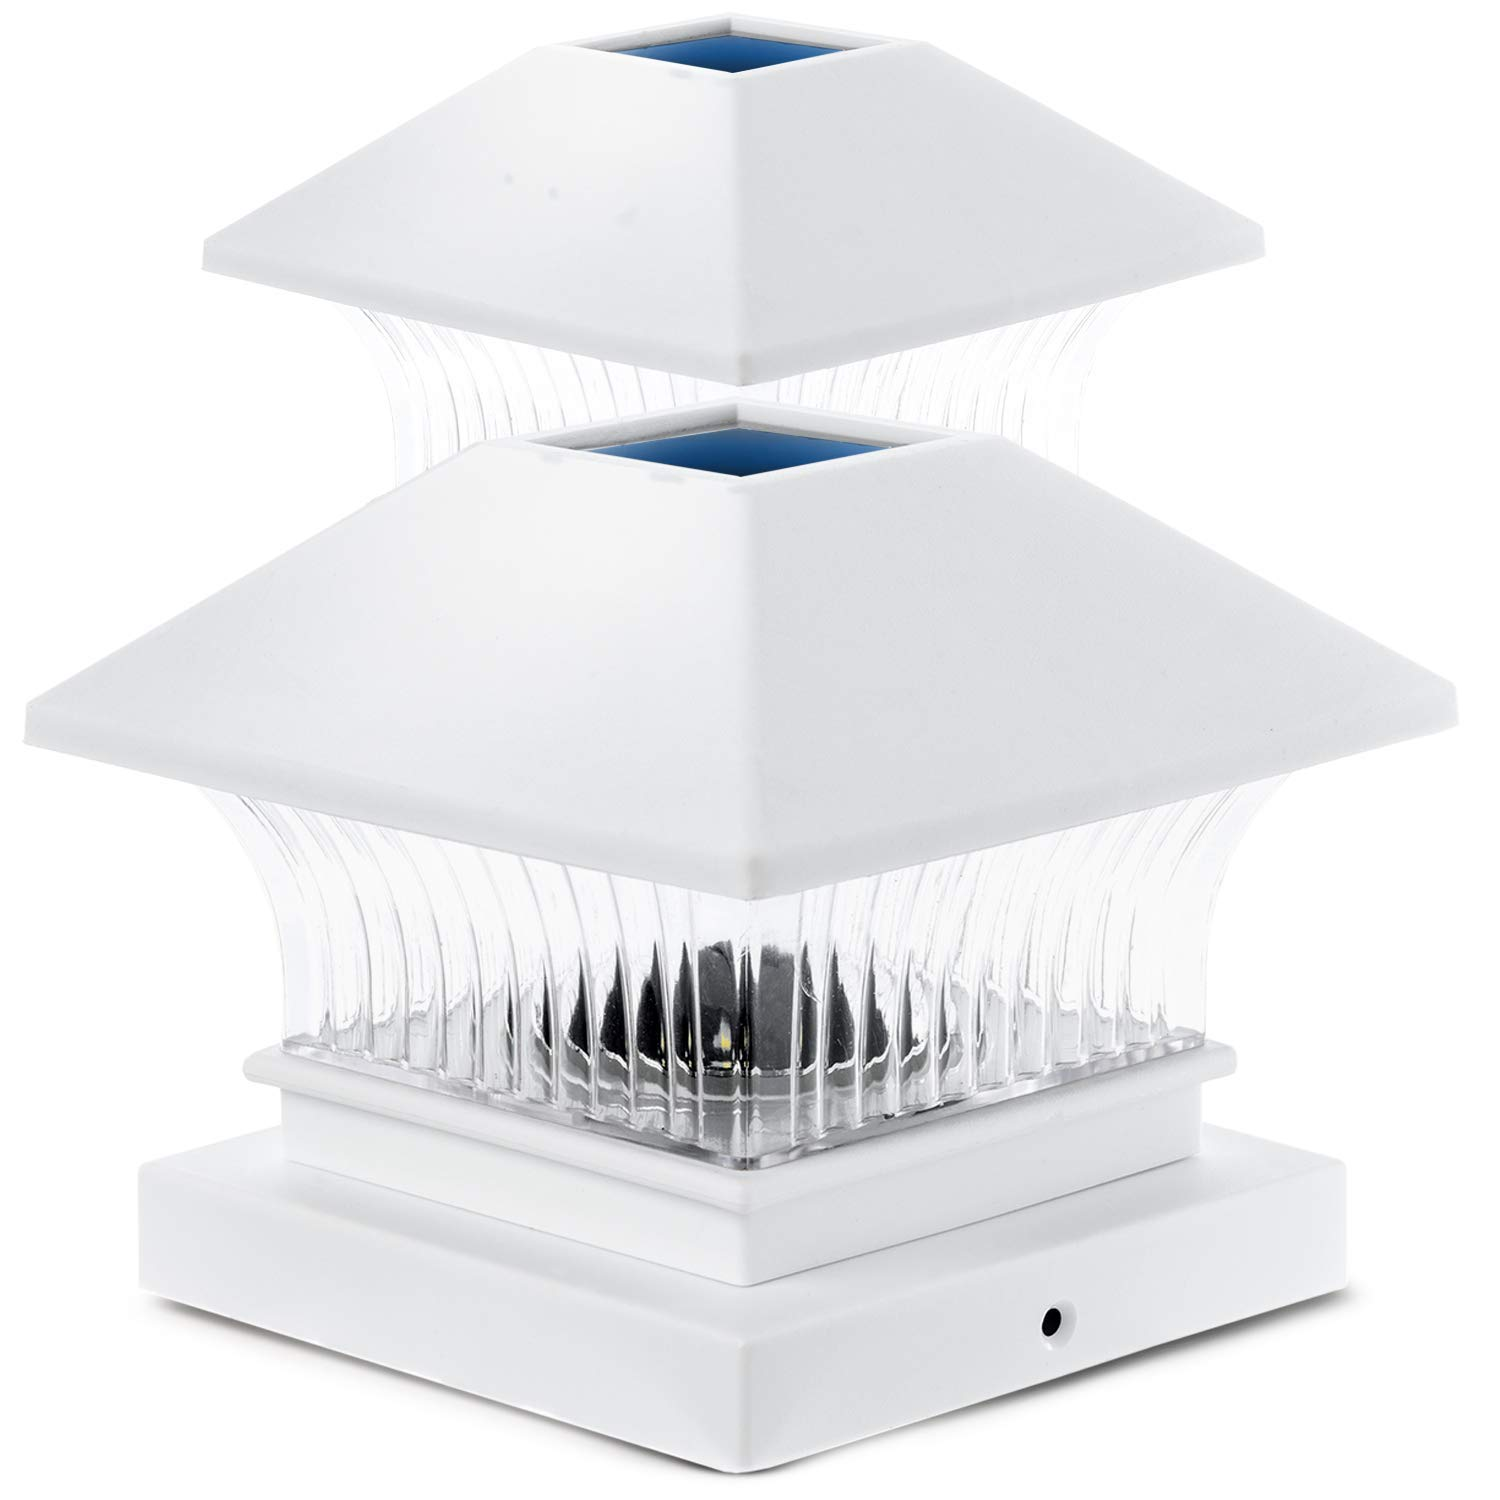 Home Zone Security Solar Post Cap Lights - Outdoor Solar Decorative Post Lights with No Wiring Required, White (2-Pack)